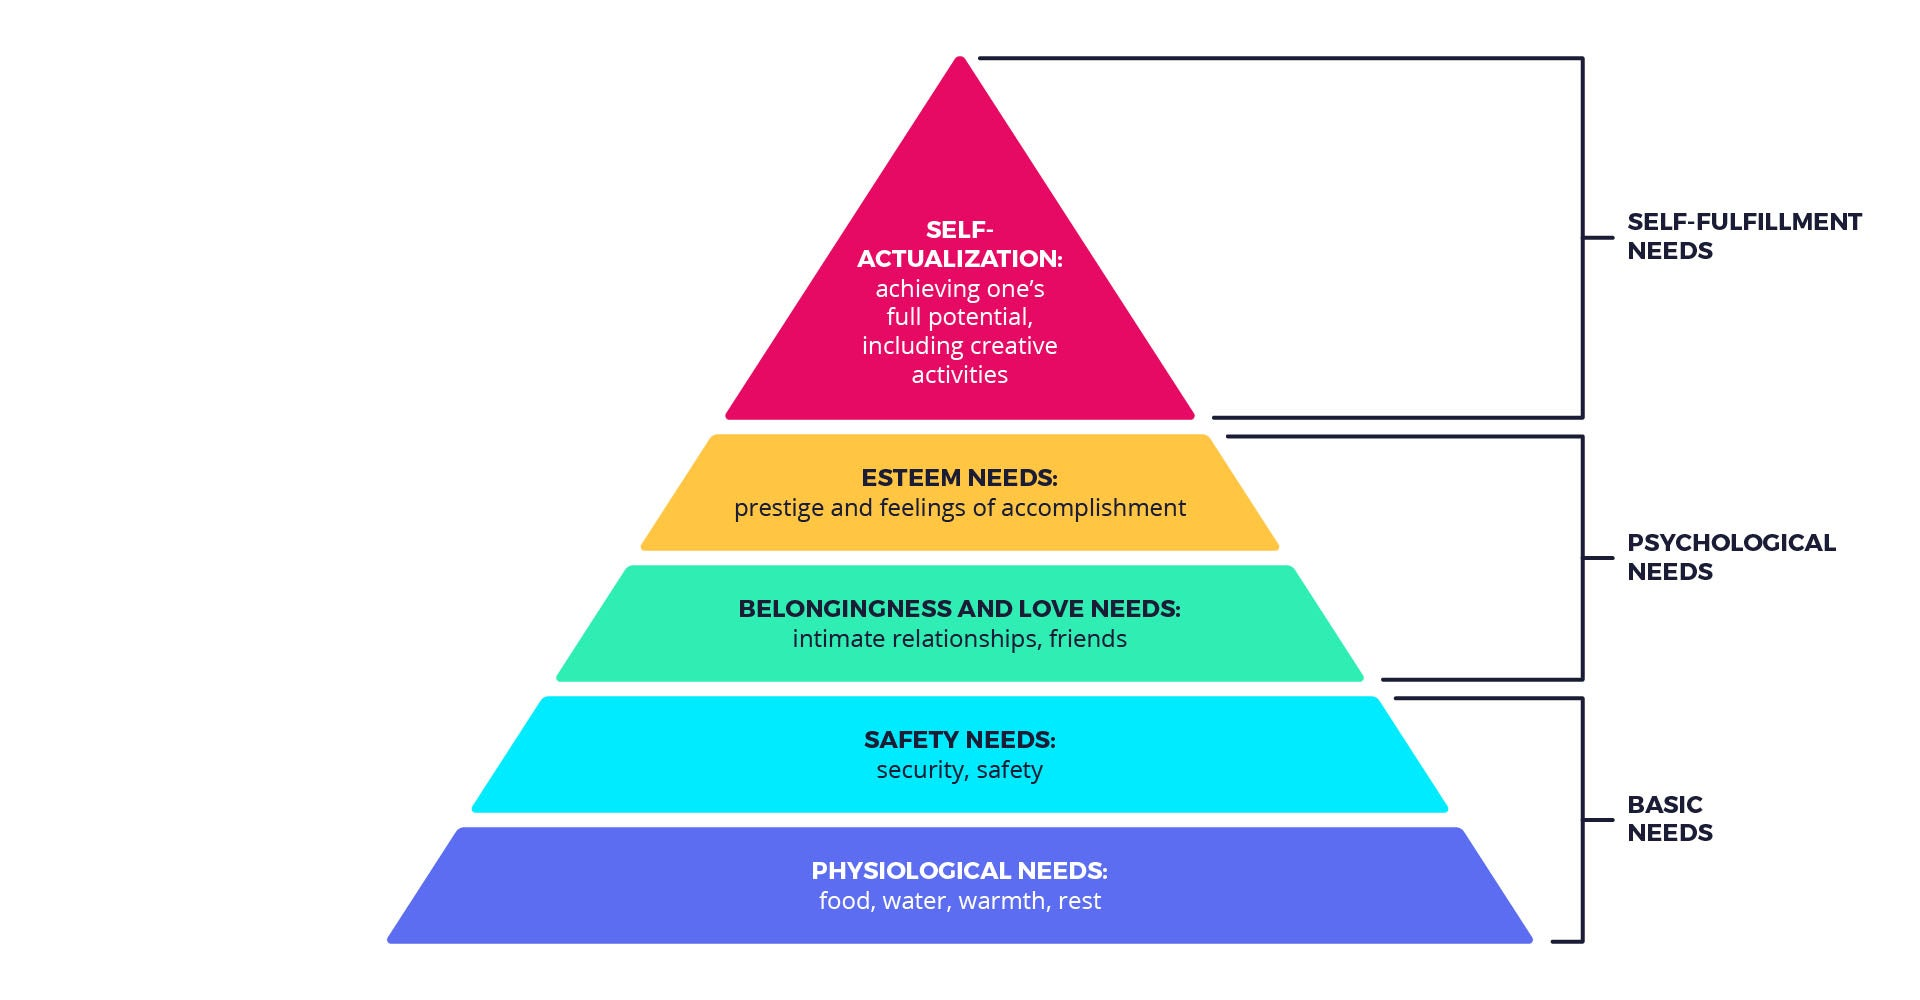 An image showing Maslow's pyramid of needs